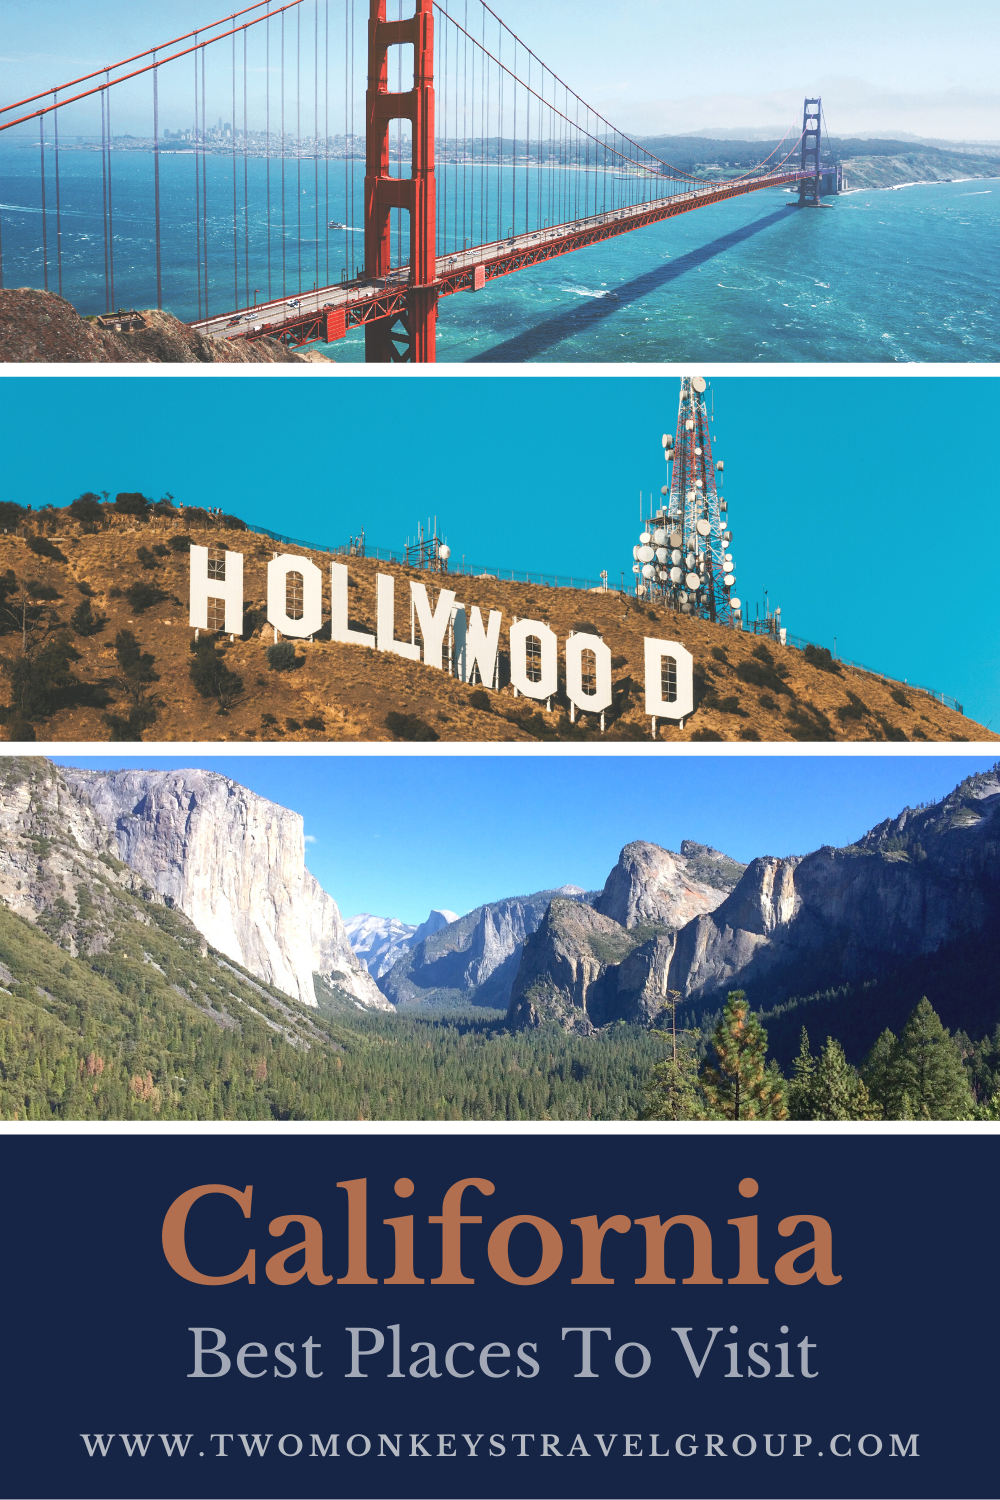 10 Best Places To Visit in California [With Suggested Day Tours]